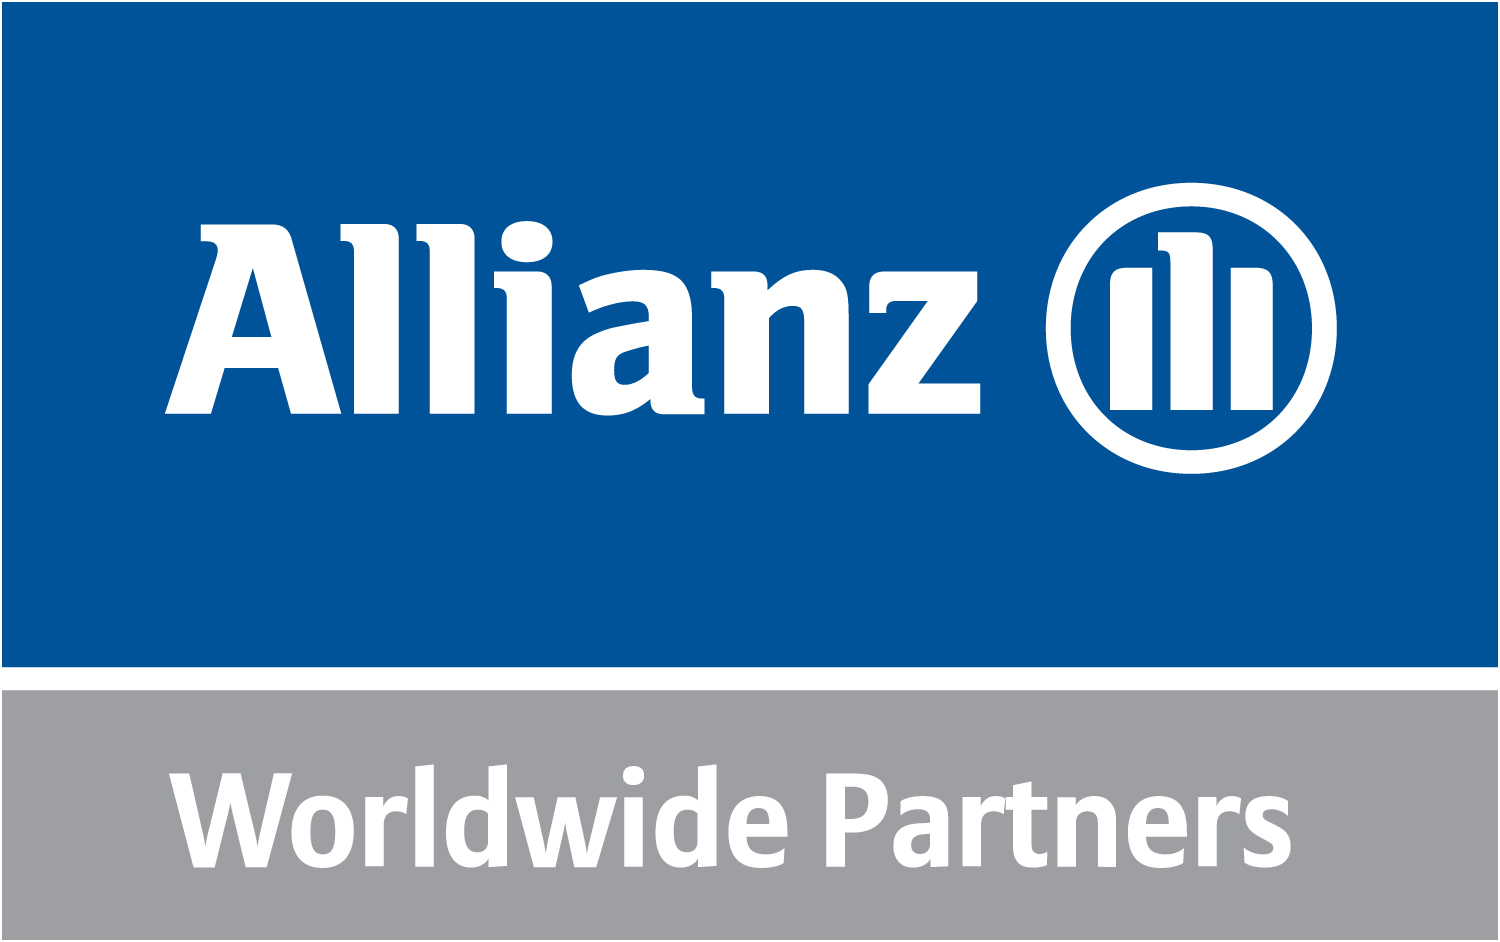 Sponsored by Allianz